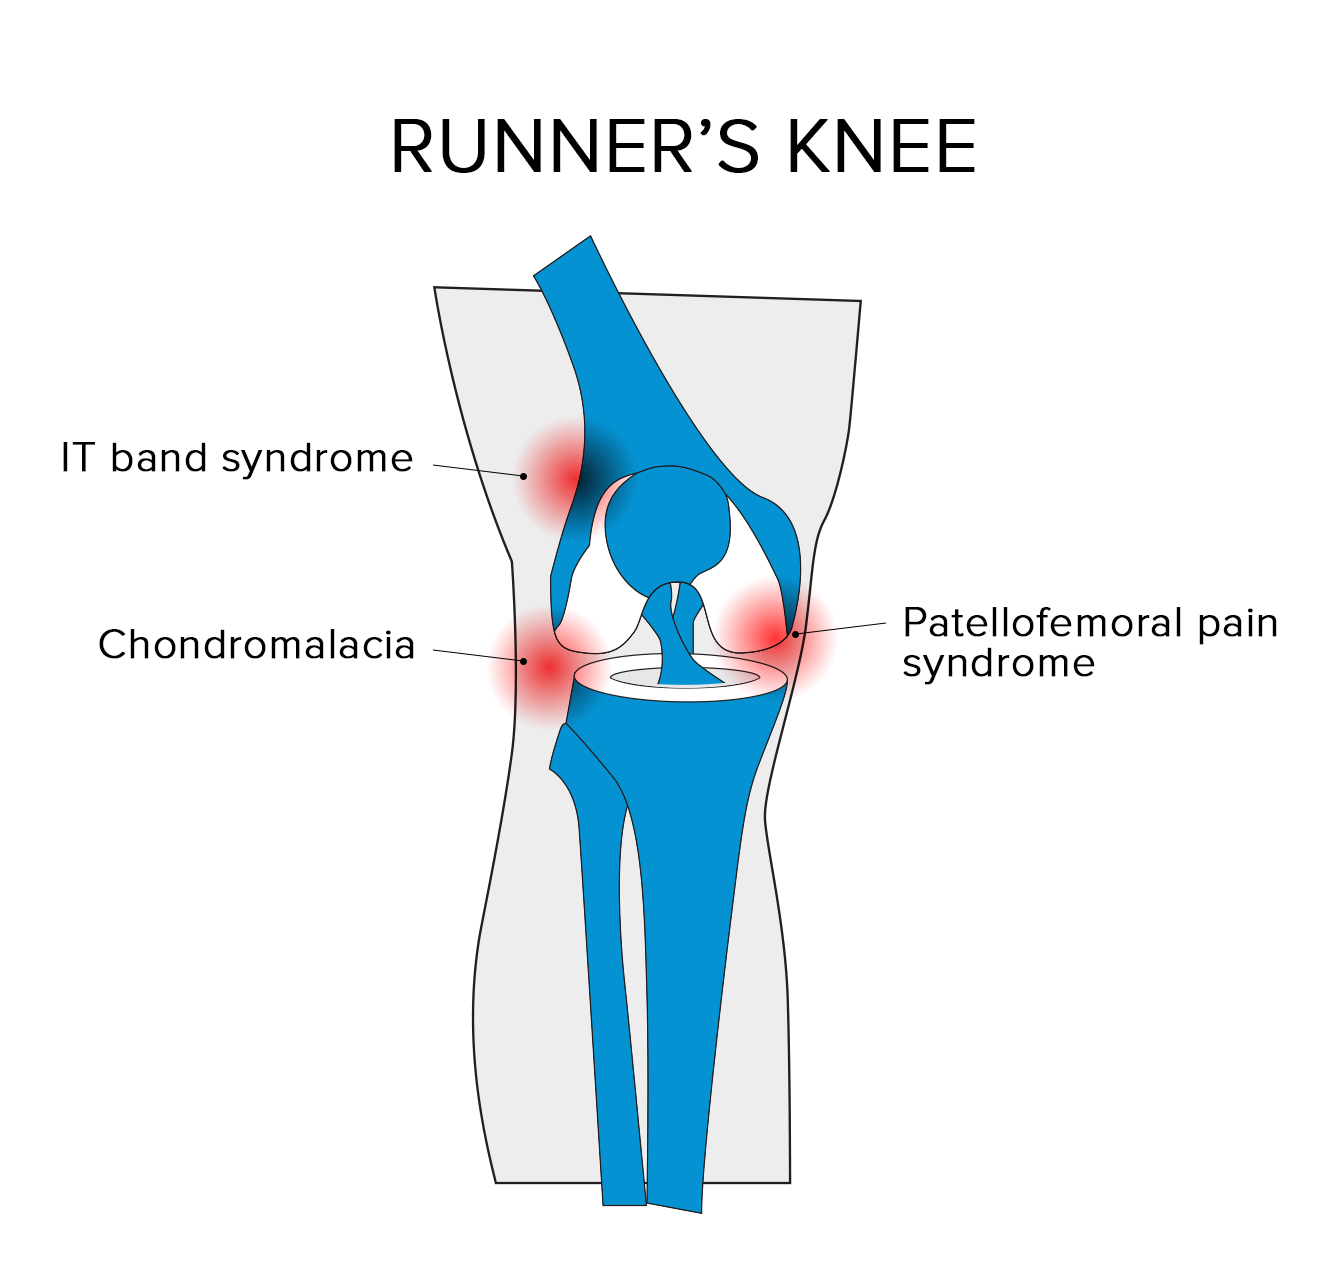 hight resolution of patellofemoral pain syndrome pfps with pfps pain occurs in the fat pad beneath the patella the synovial tissue lining the knee joint and surrounding